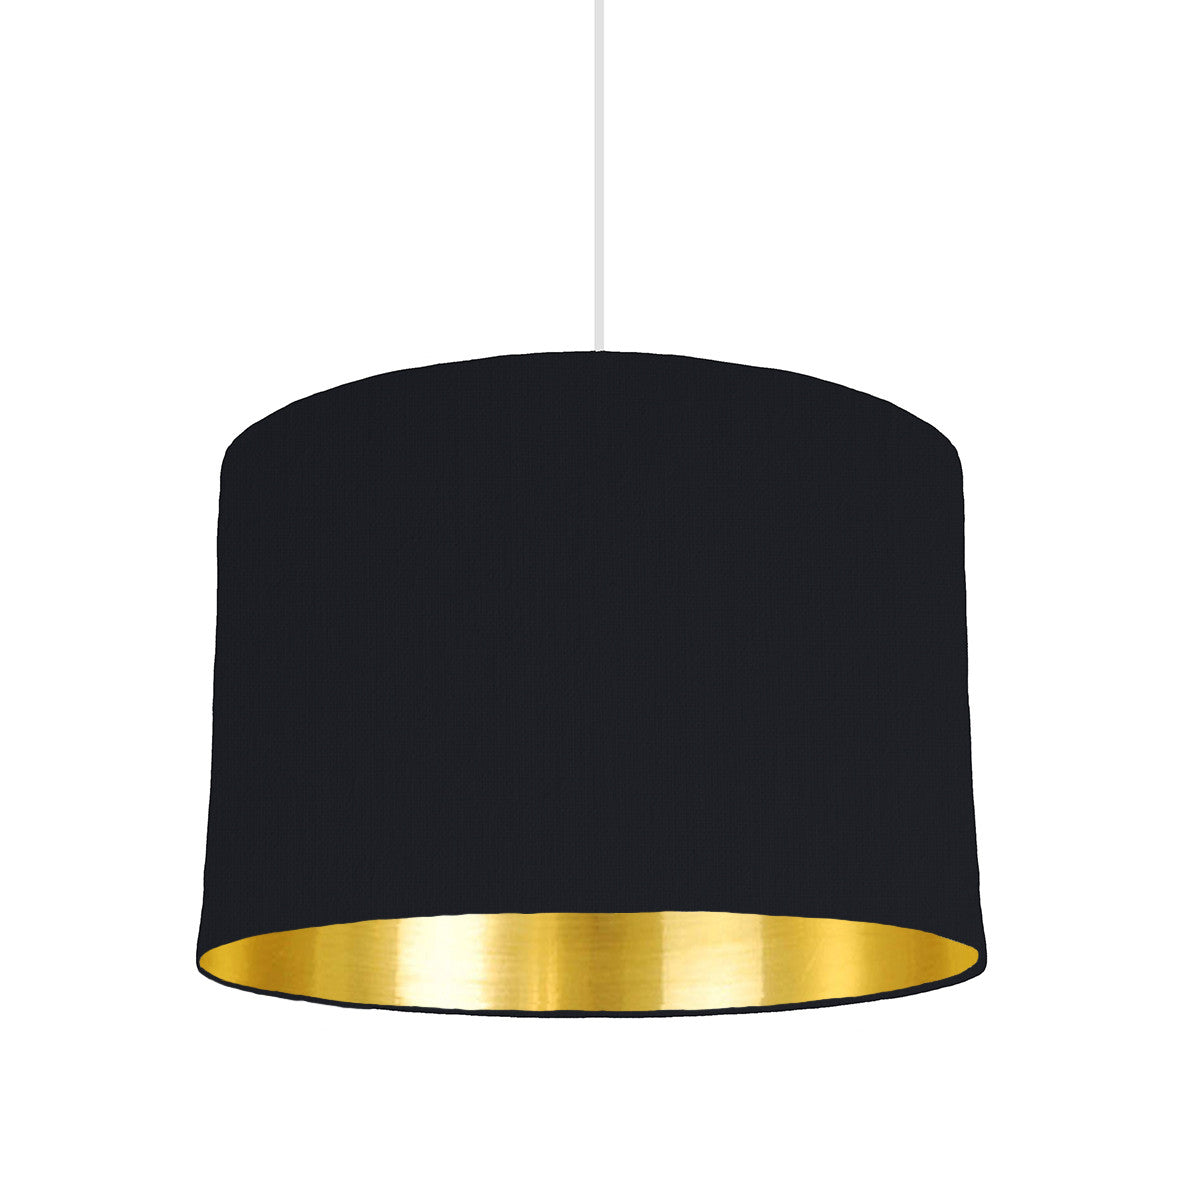 Black Lampshade With Gold Mirror Lining, 30cm wide